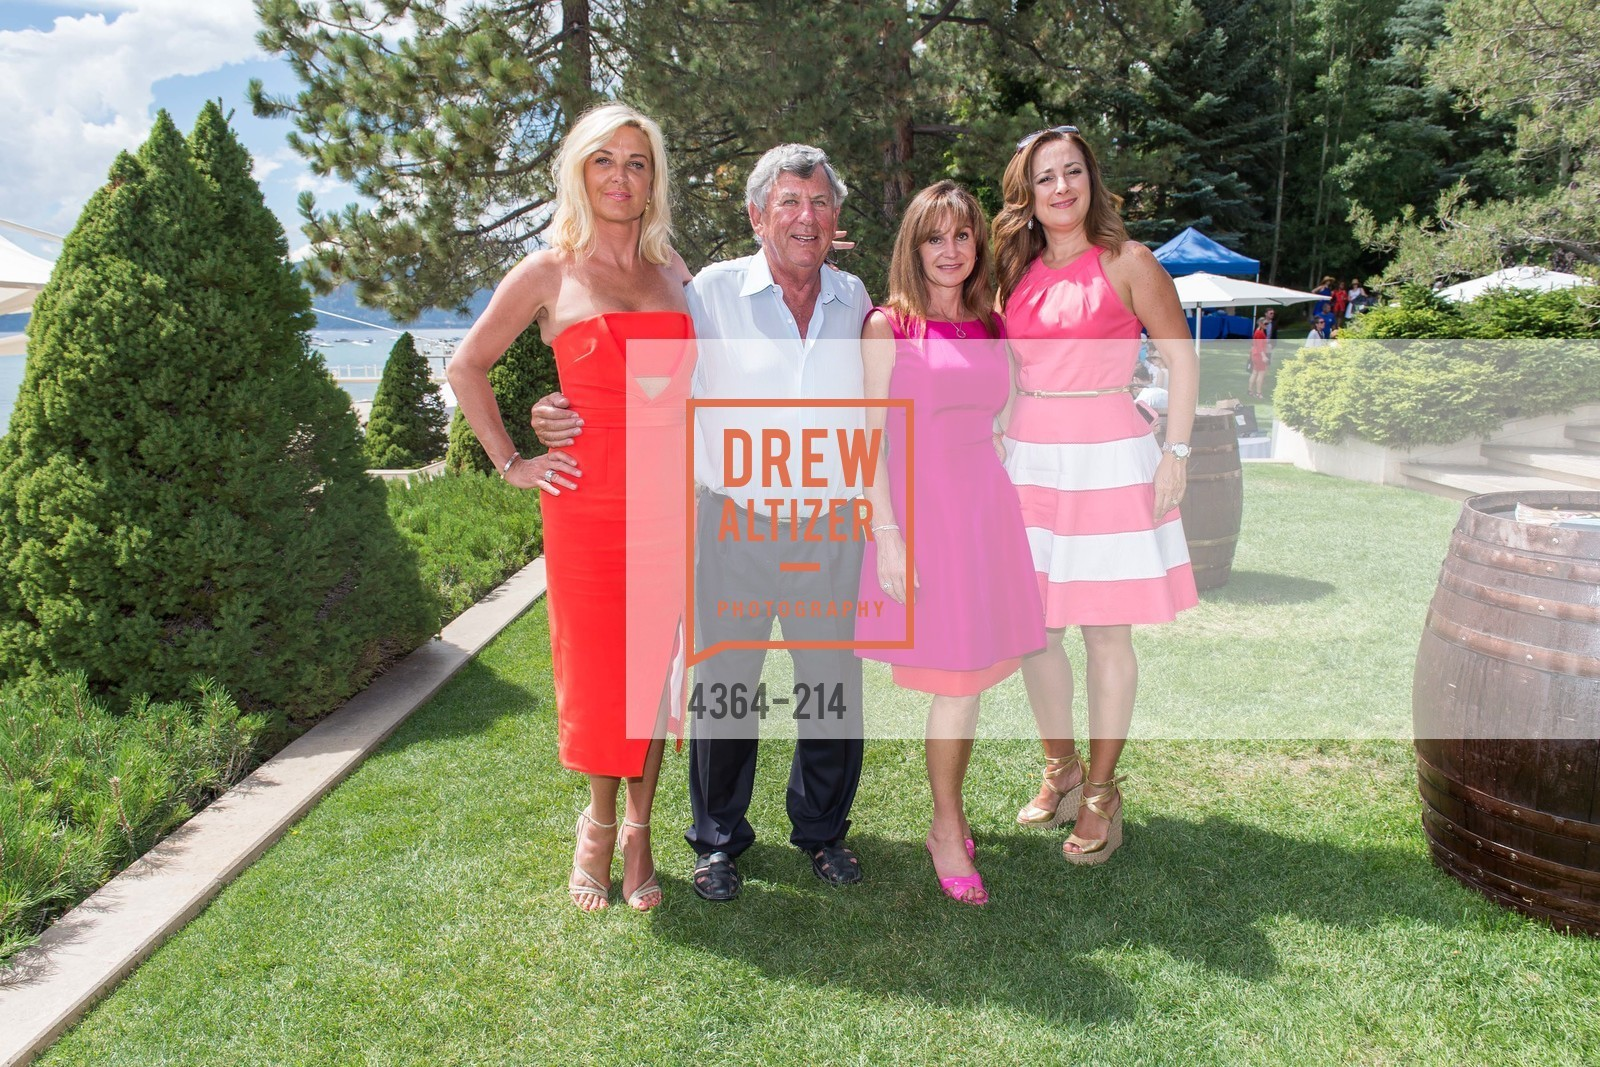 Angela Karp, Kern Schumacher, Maria Urso, Veronica Salinas, Saks Fifth Avenue and The League to Save Lake Tahoe Present Fashion on the Lake, Private Residence, August 1st, 2015,Drew Altizer, Drew Altizer Photography, full-service agency, private events, San Francisco photographer, photographer california